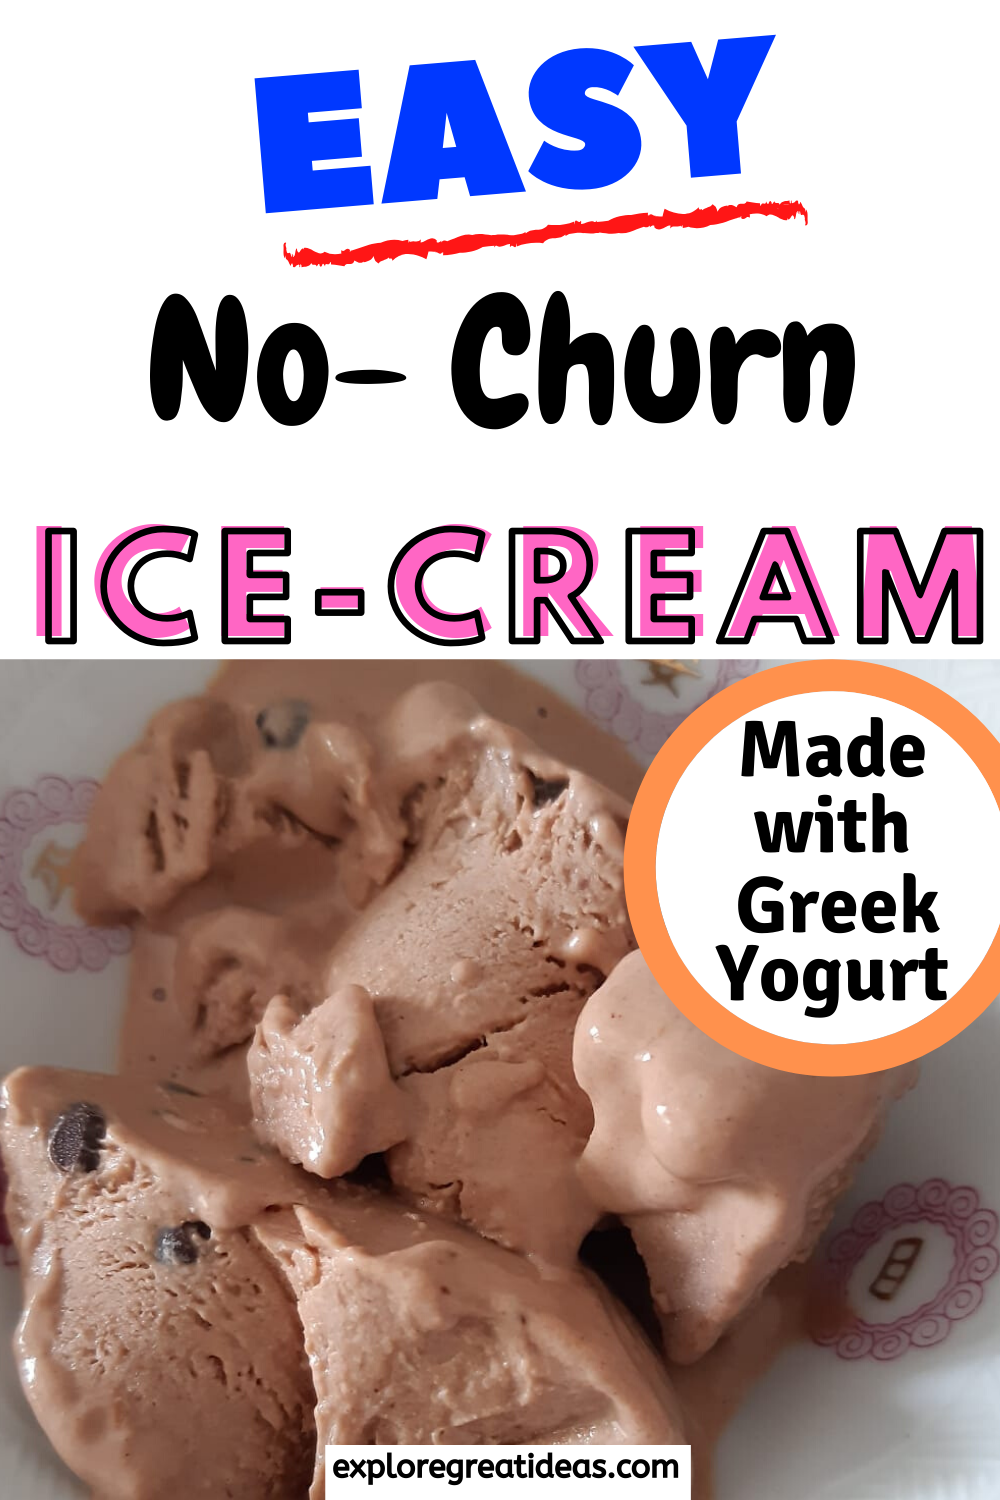 No Churn Homemade Ice Cream Recipe In 2020 Homemade Ice Cream Ice Cream Maker Recipes Greek Yogurt Ice Cream Recipe